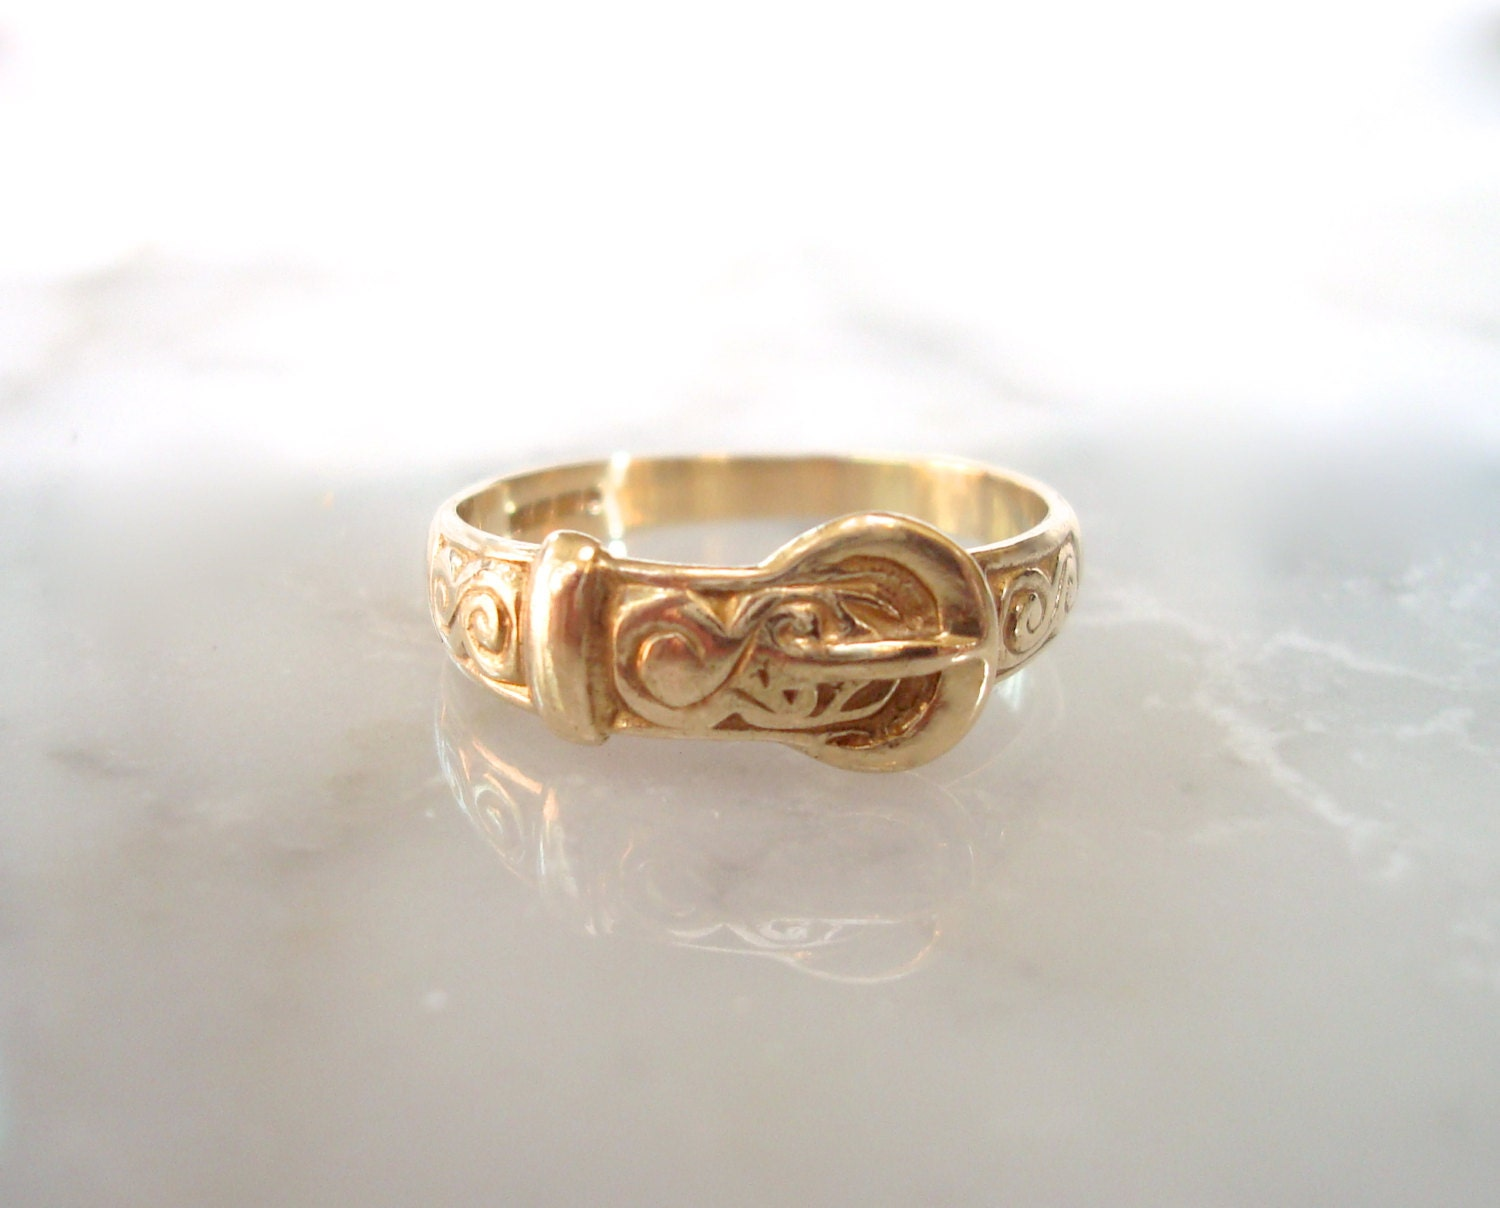 Gold Buckle Ring Solid Gold Hallmarked Wedding Or Right Hand